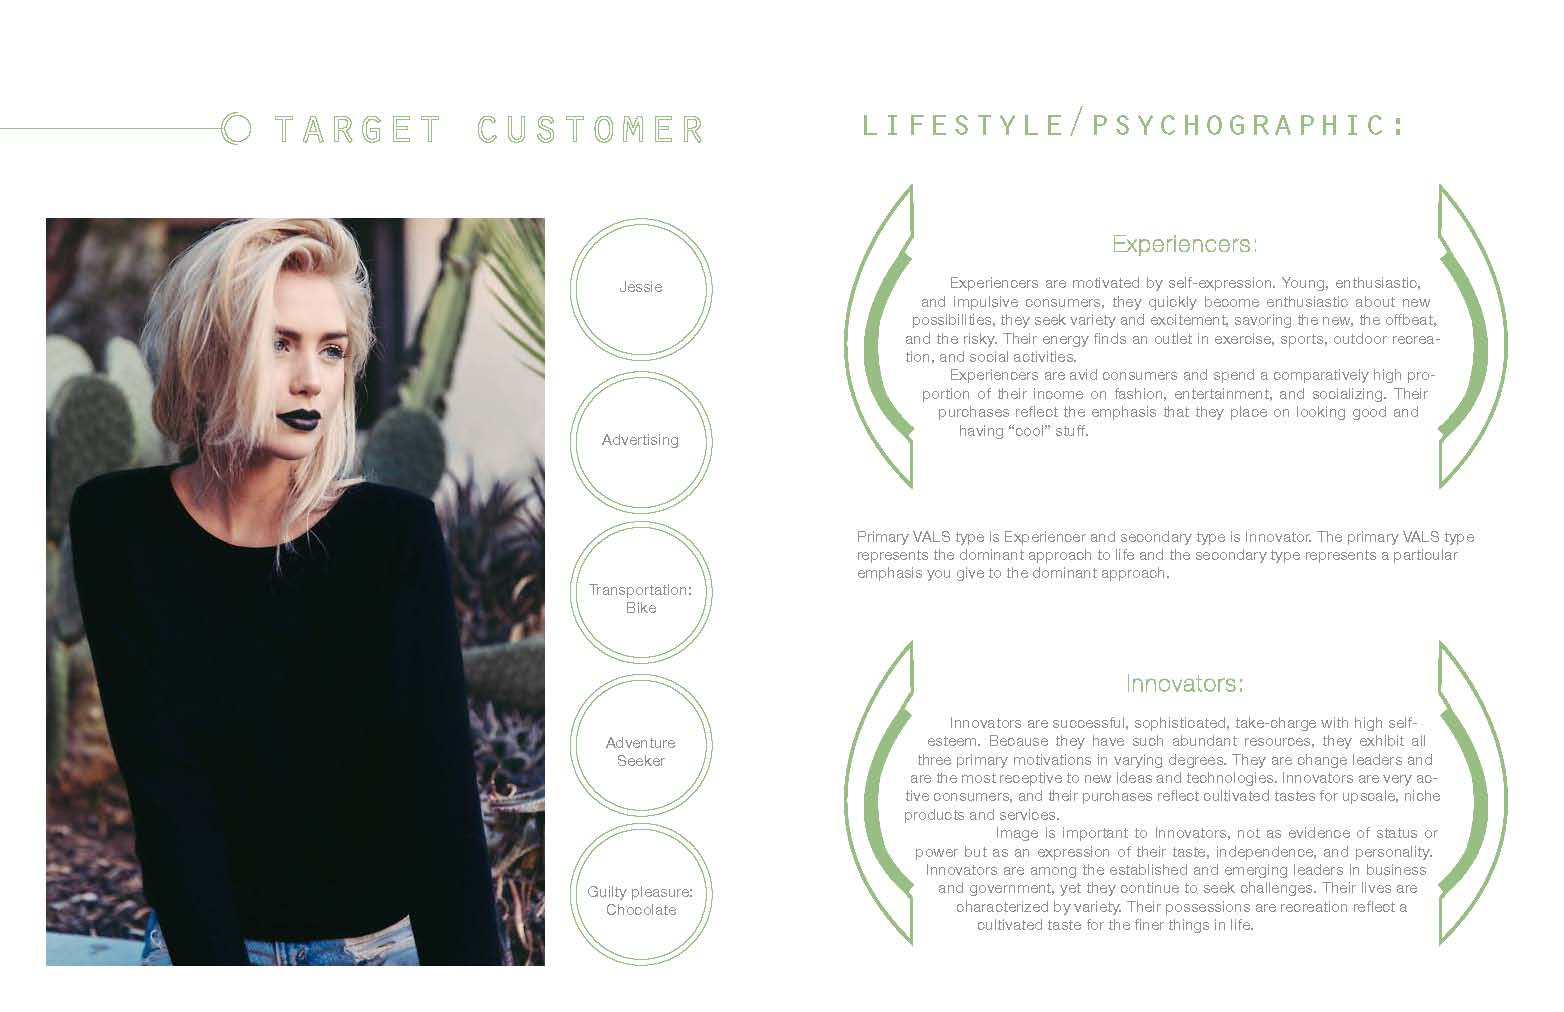 capstone project_Page_06.jpg